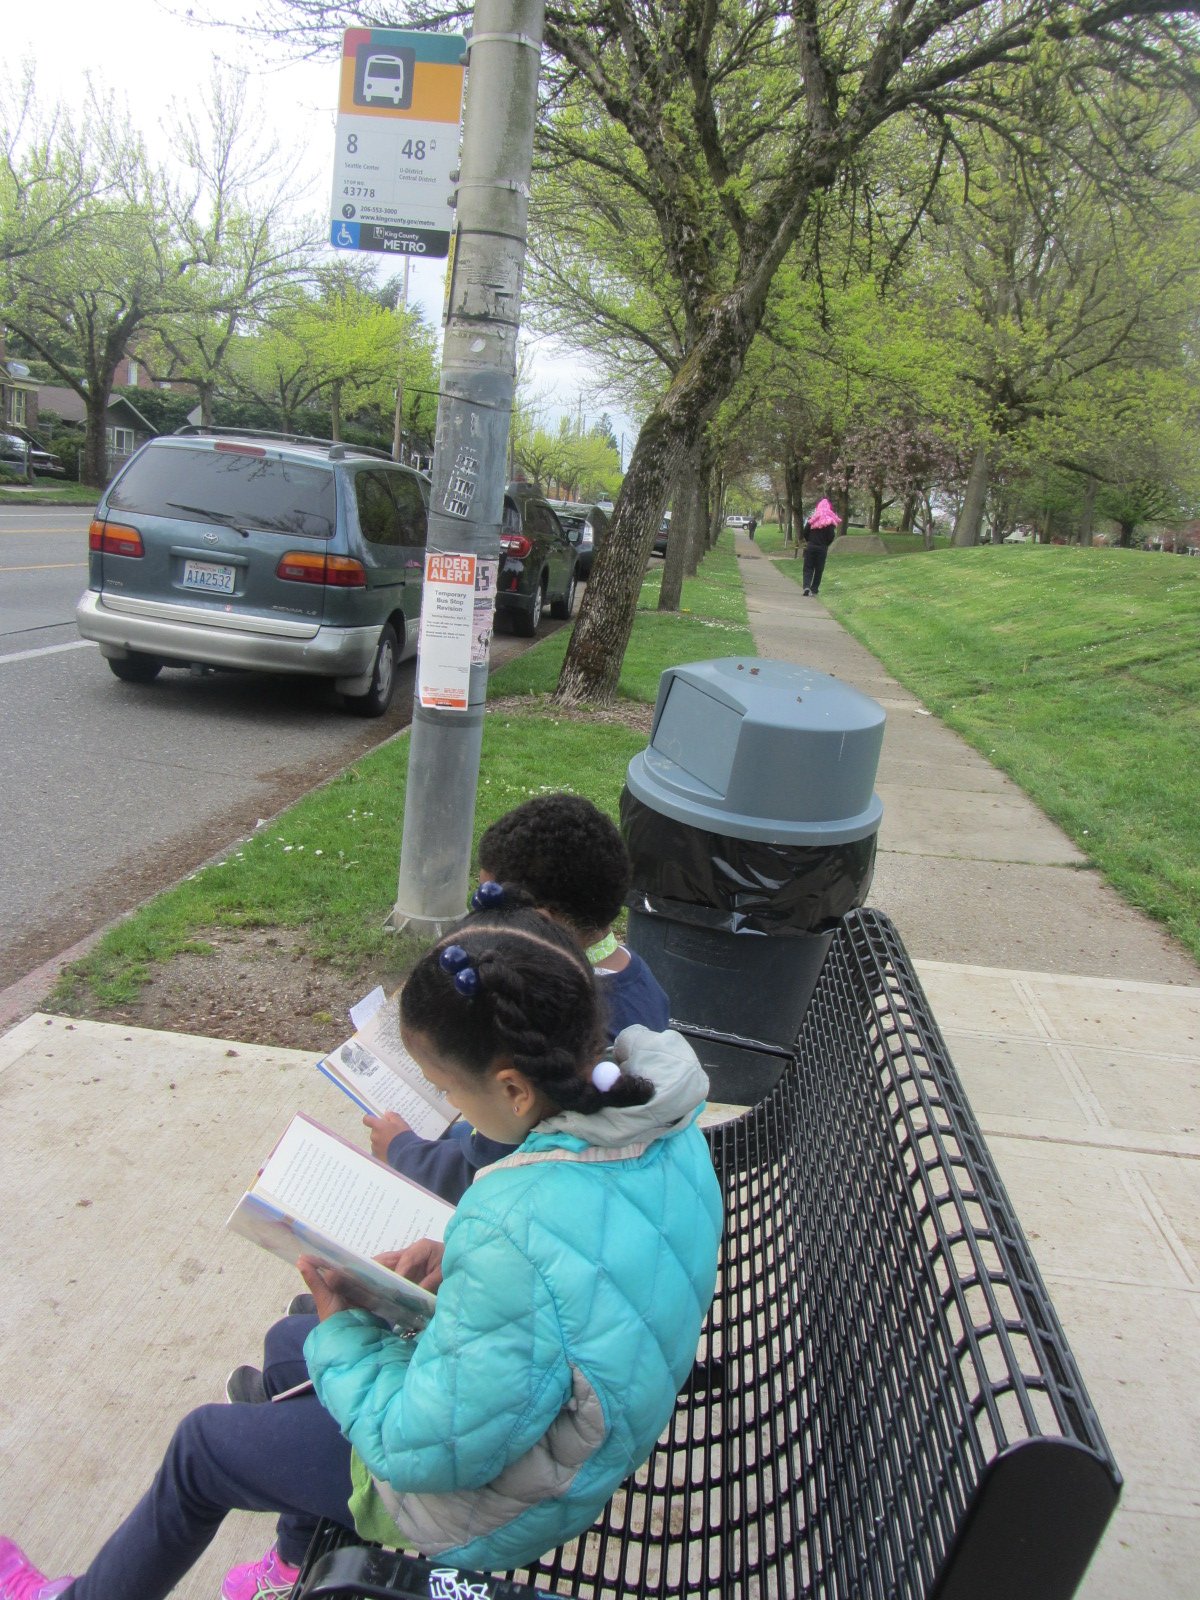 """my ride on the bus essay """"that little blue and white bus across the street  my access-a-ride driver, a  skinny older black man with glasses and a graying beard, exited the  an  unapologetic plea for your help funding more personal essays."""